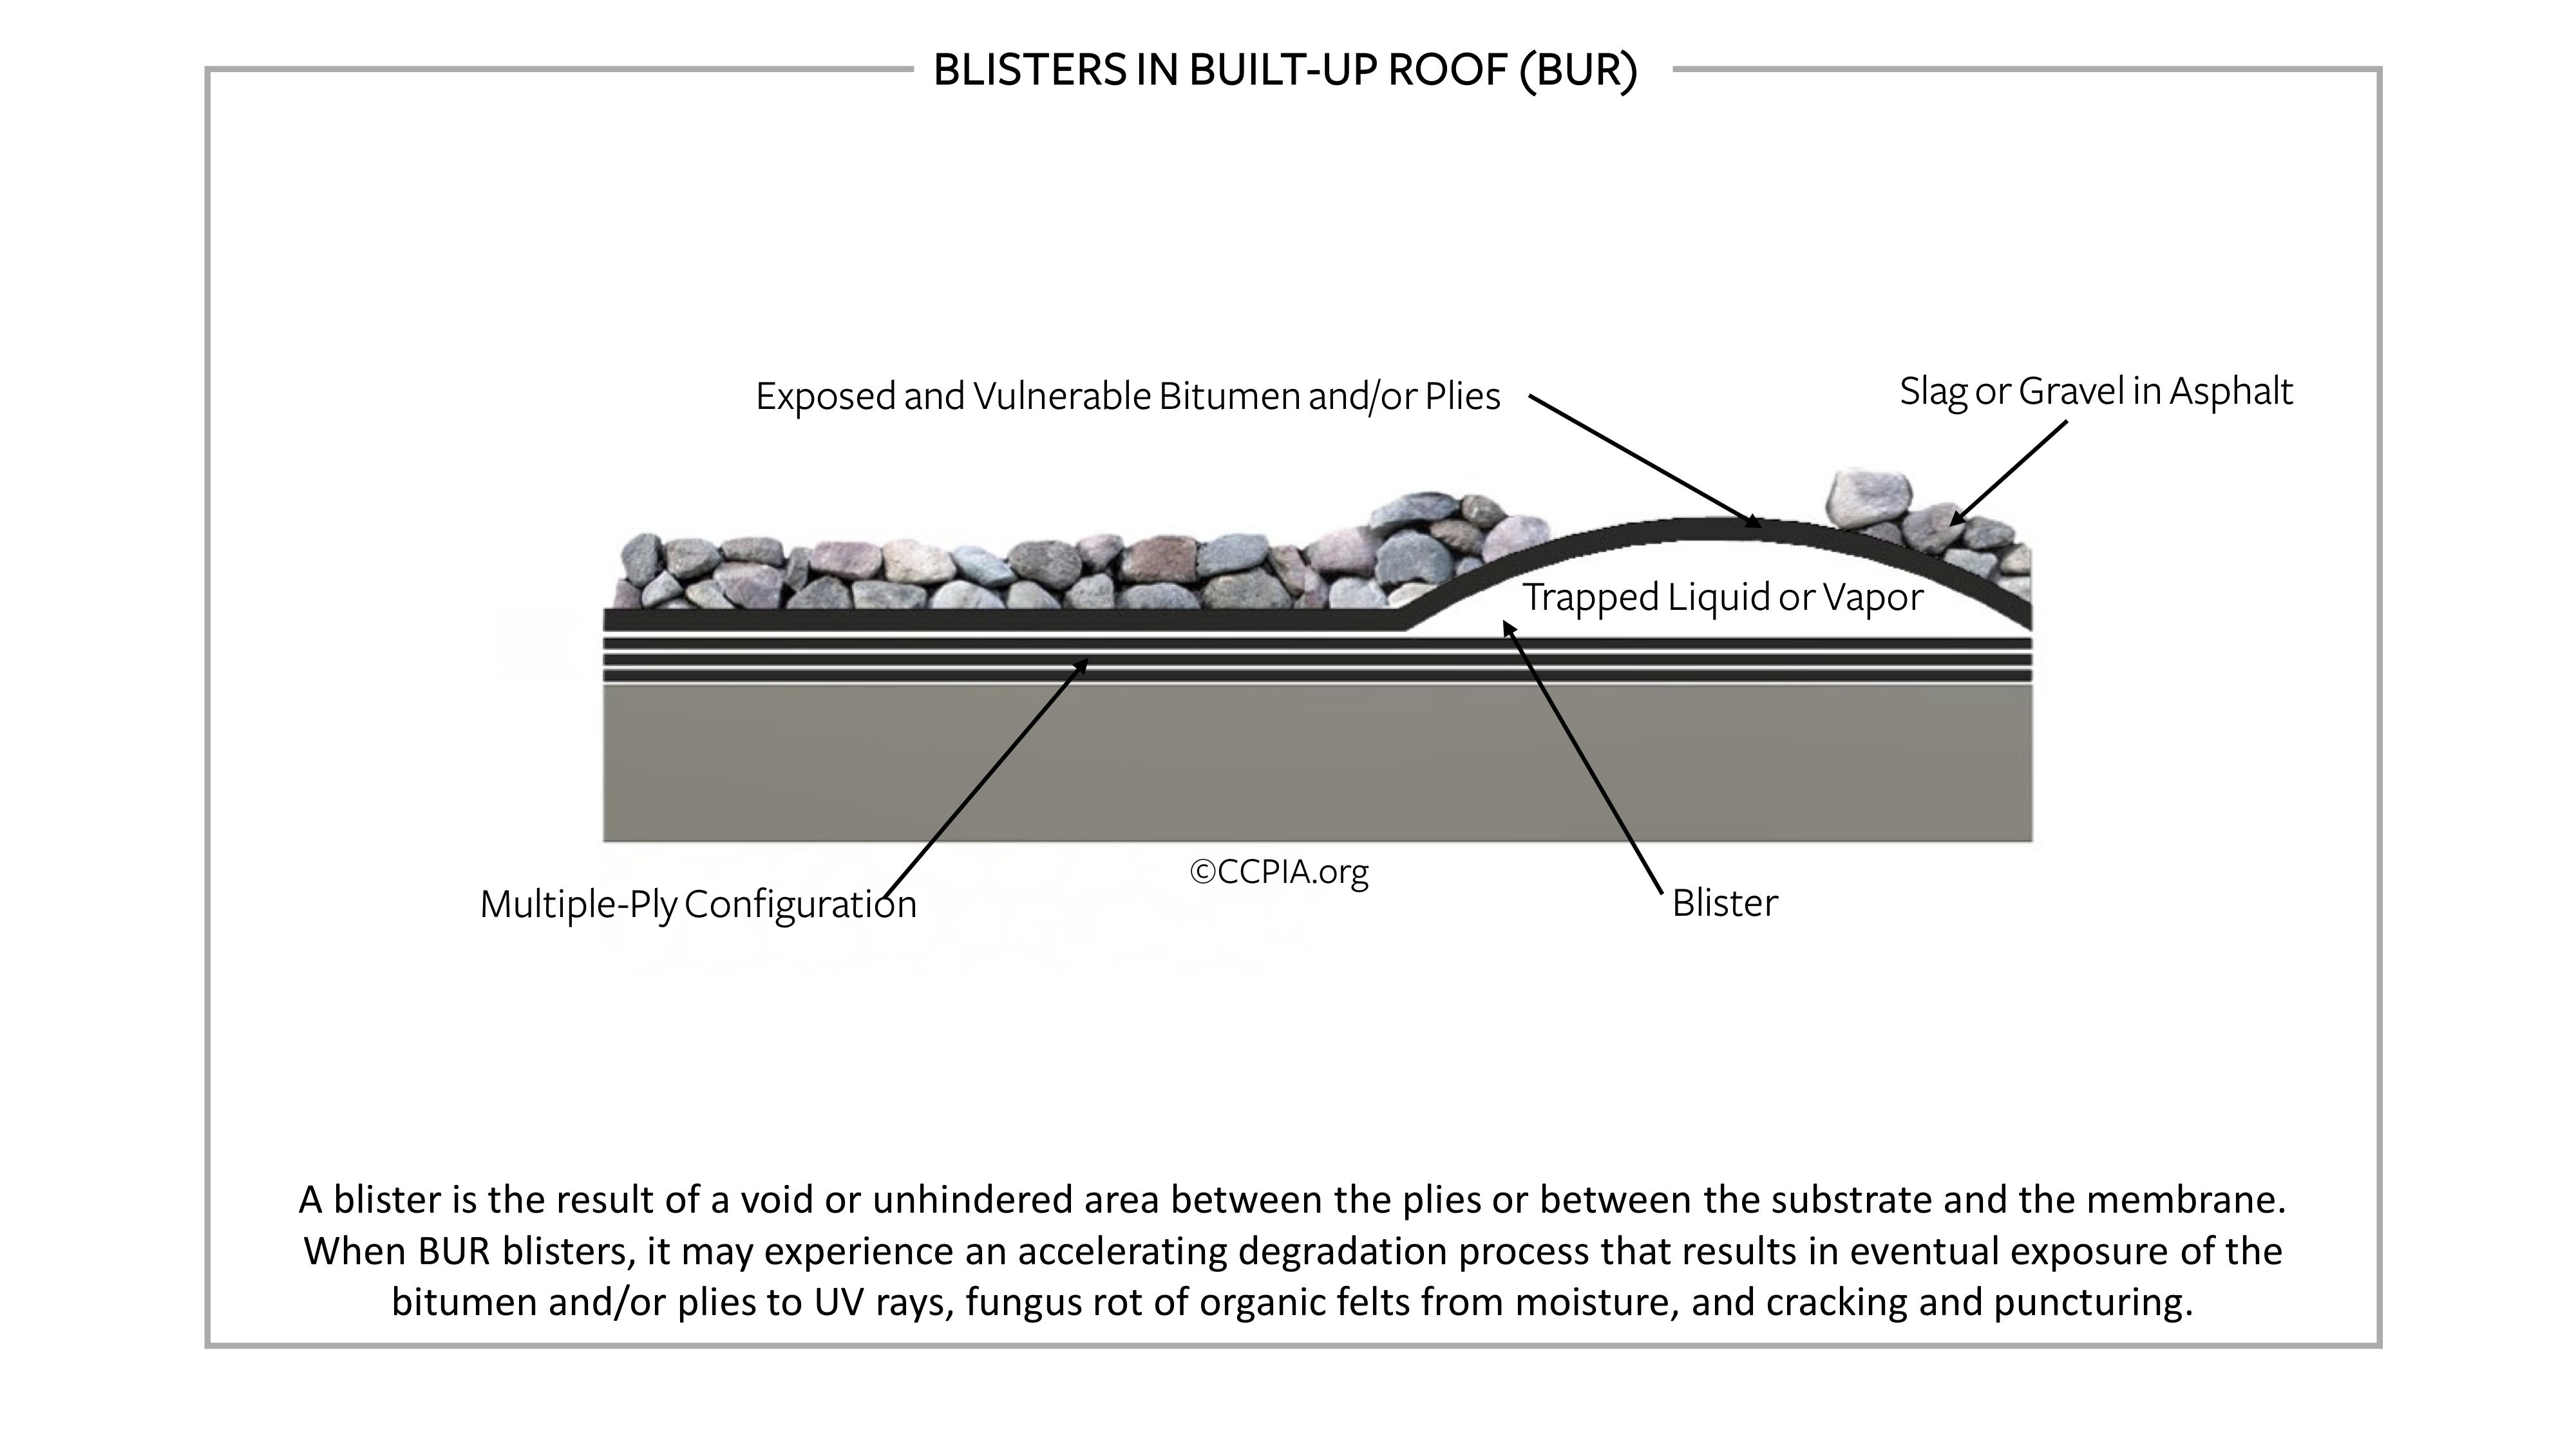 Blisters in built-up roof.